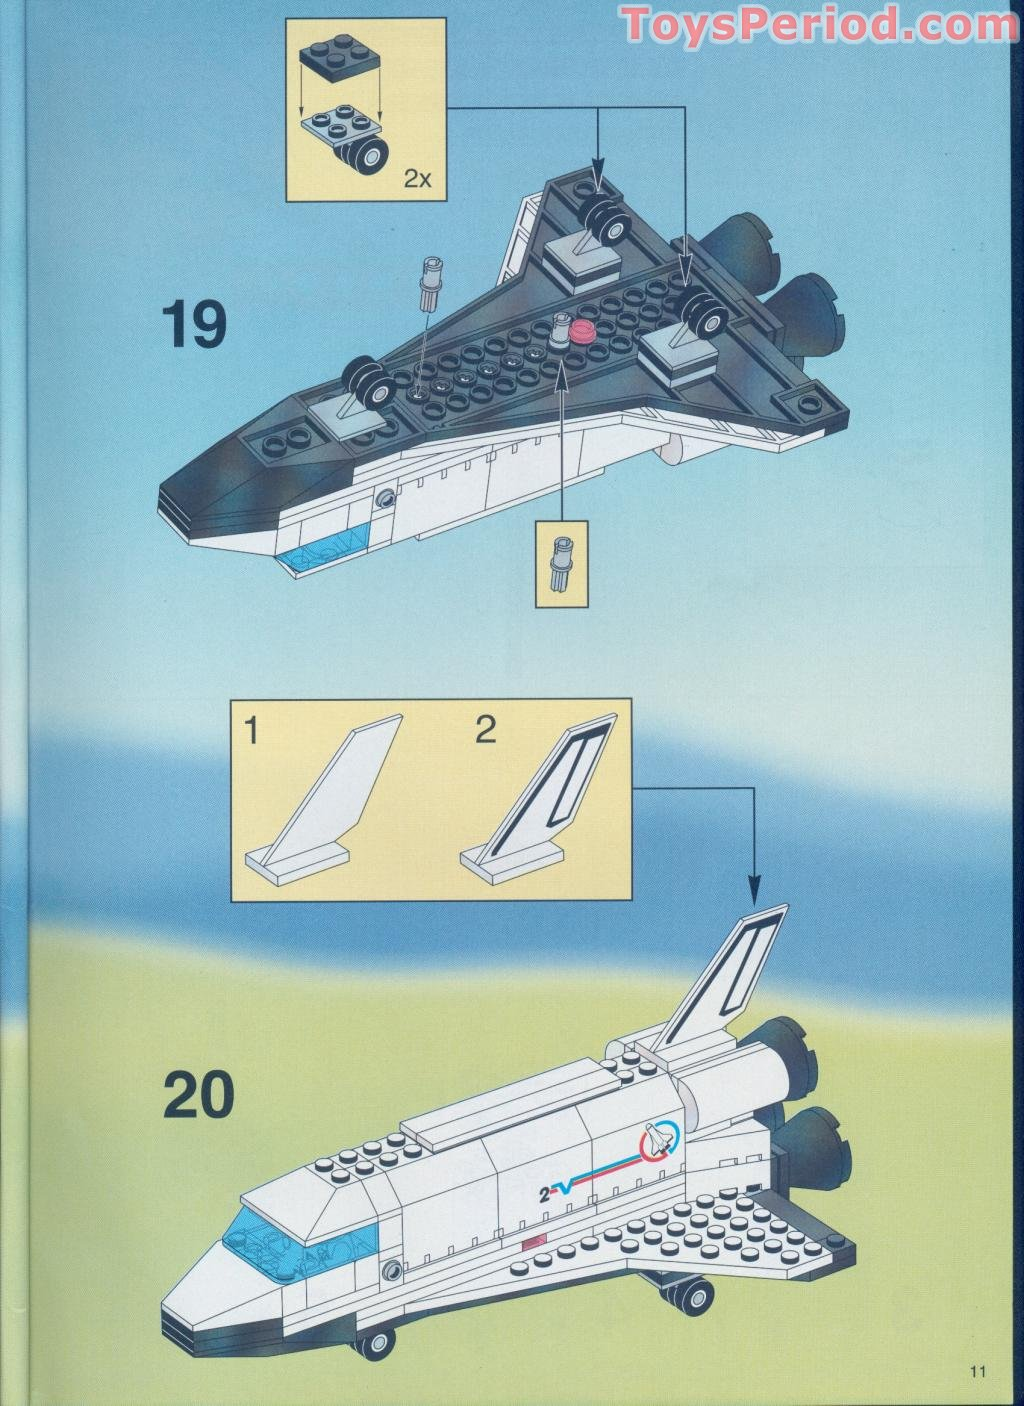 lego space shuttle parts - photo #12